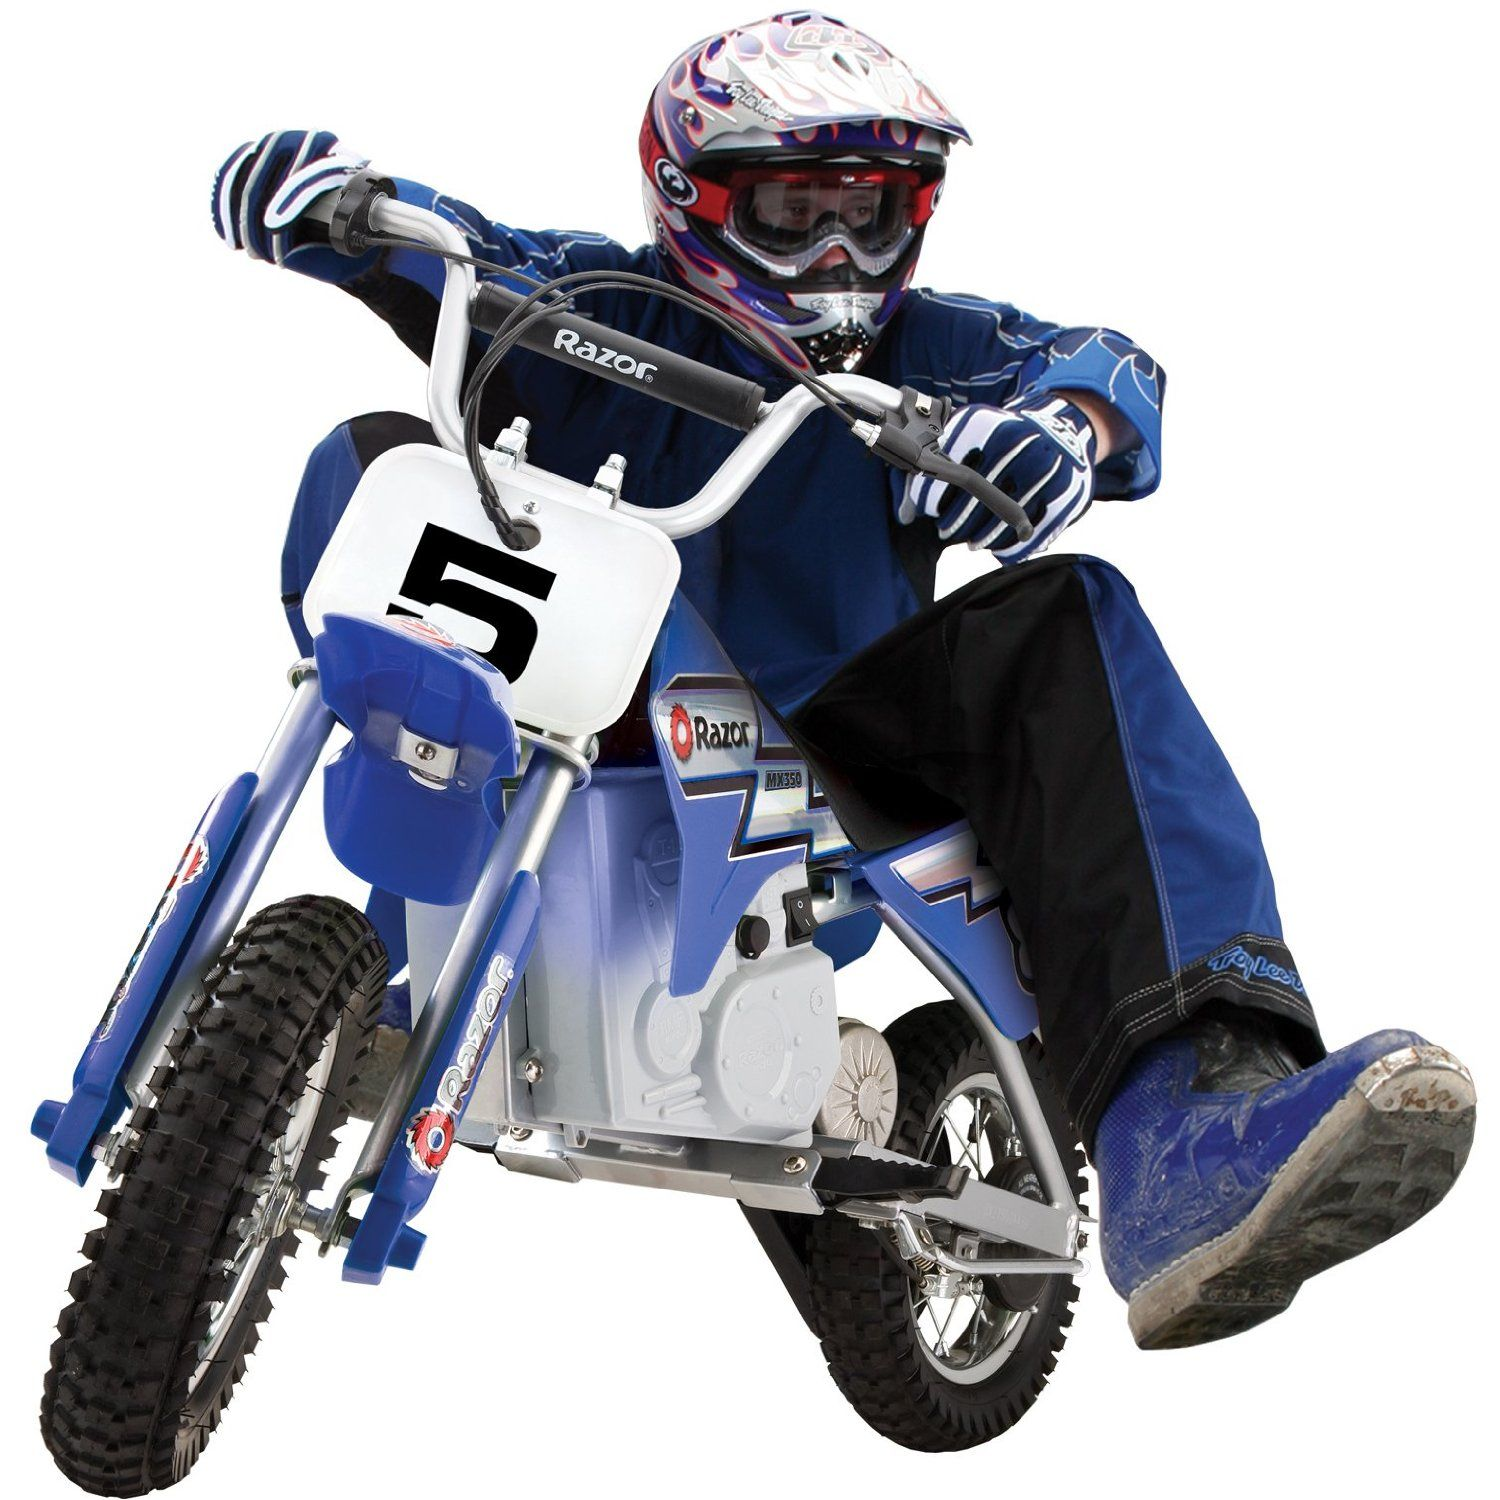 This Review Is From Razor Mx350 Dirt Rocket Electric Motocross Bike Sports I Purchased Four Of These At The Same Time I Have Three Six Year Olds And An Eig